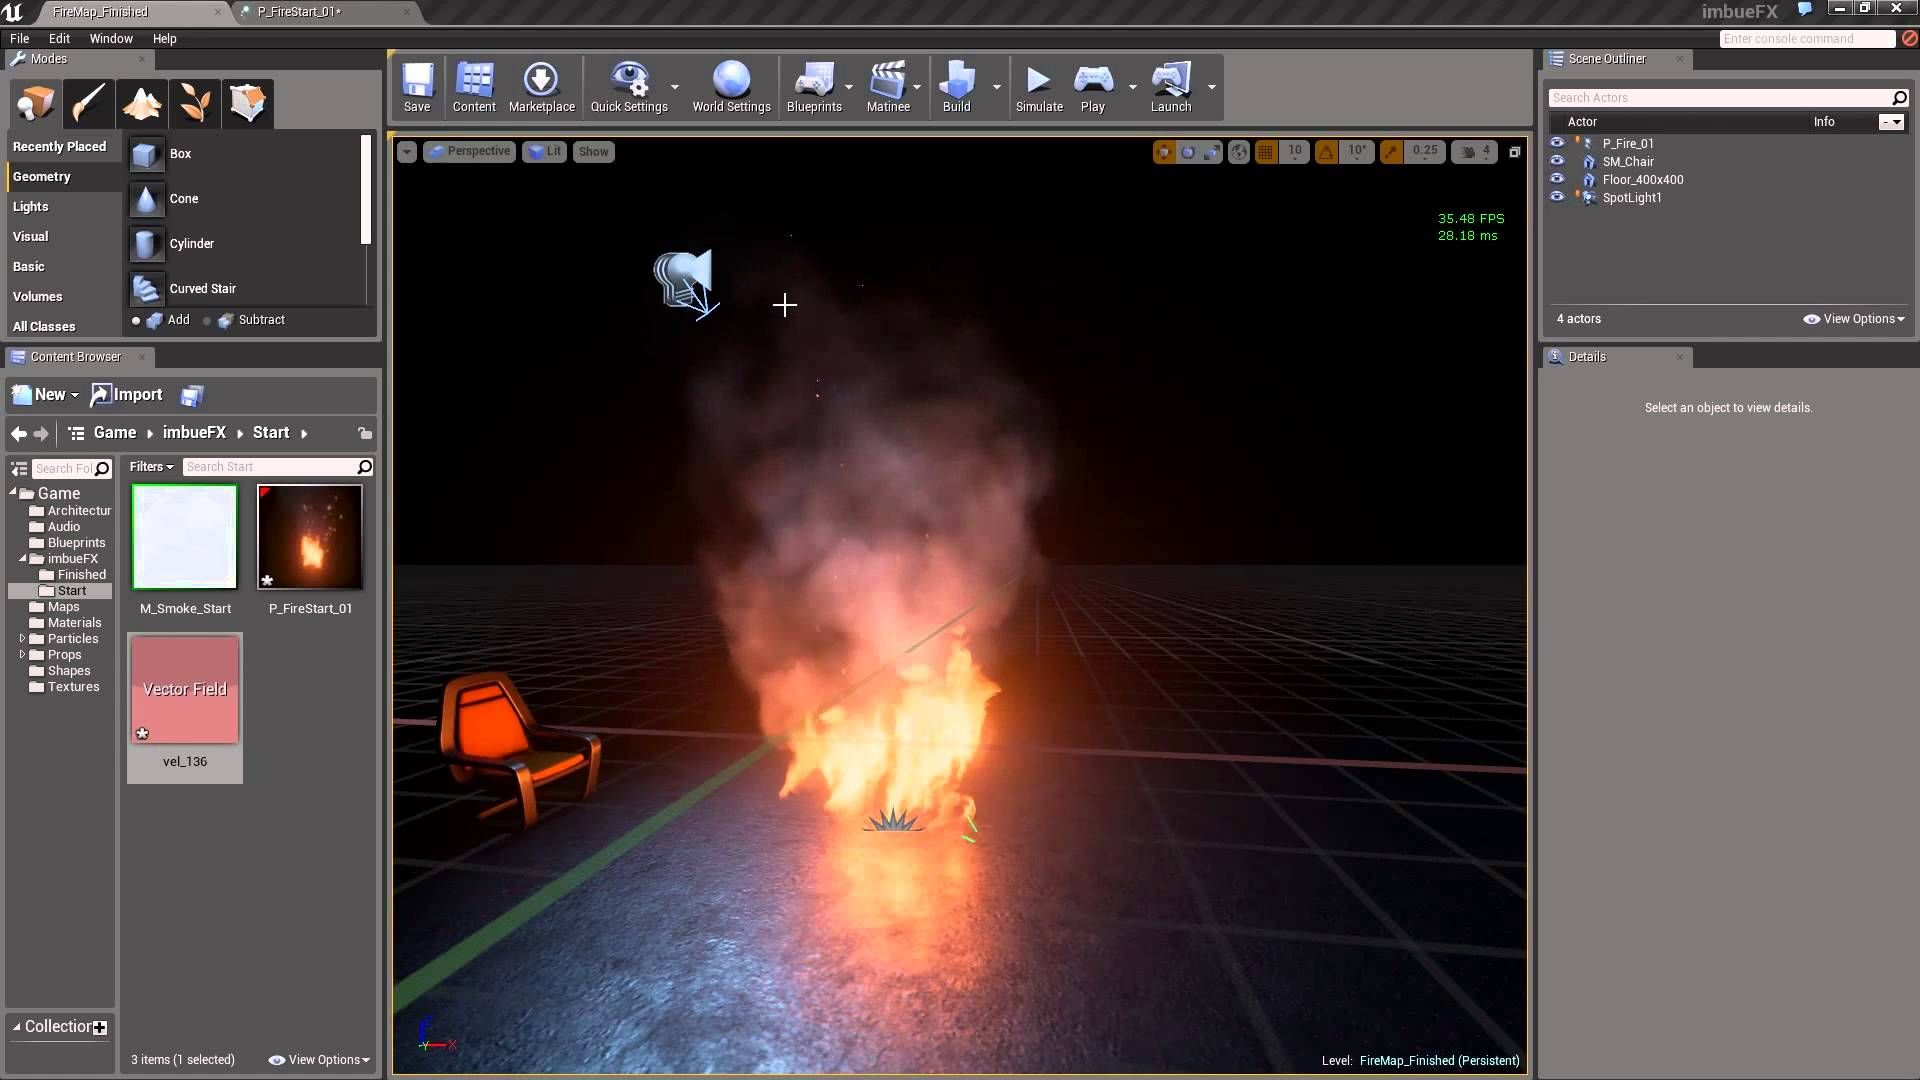 imbueFX - Intro to GPU & Lit Particles in Unreal Engine 4